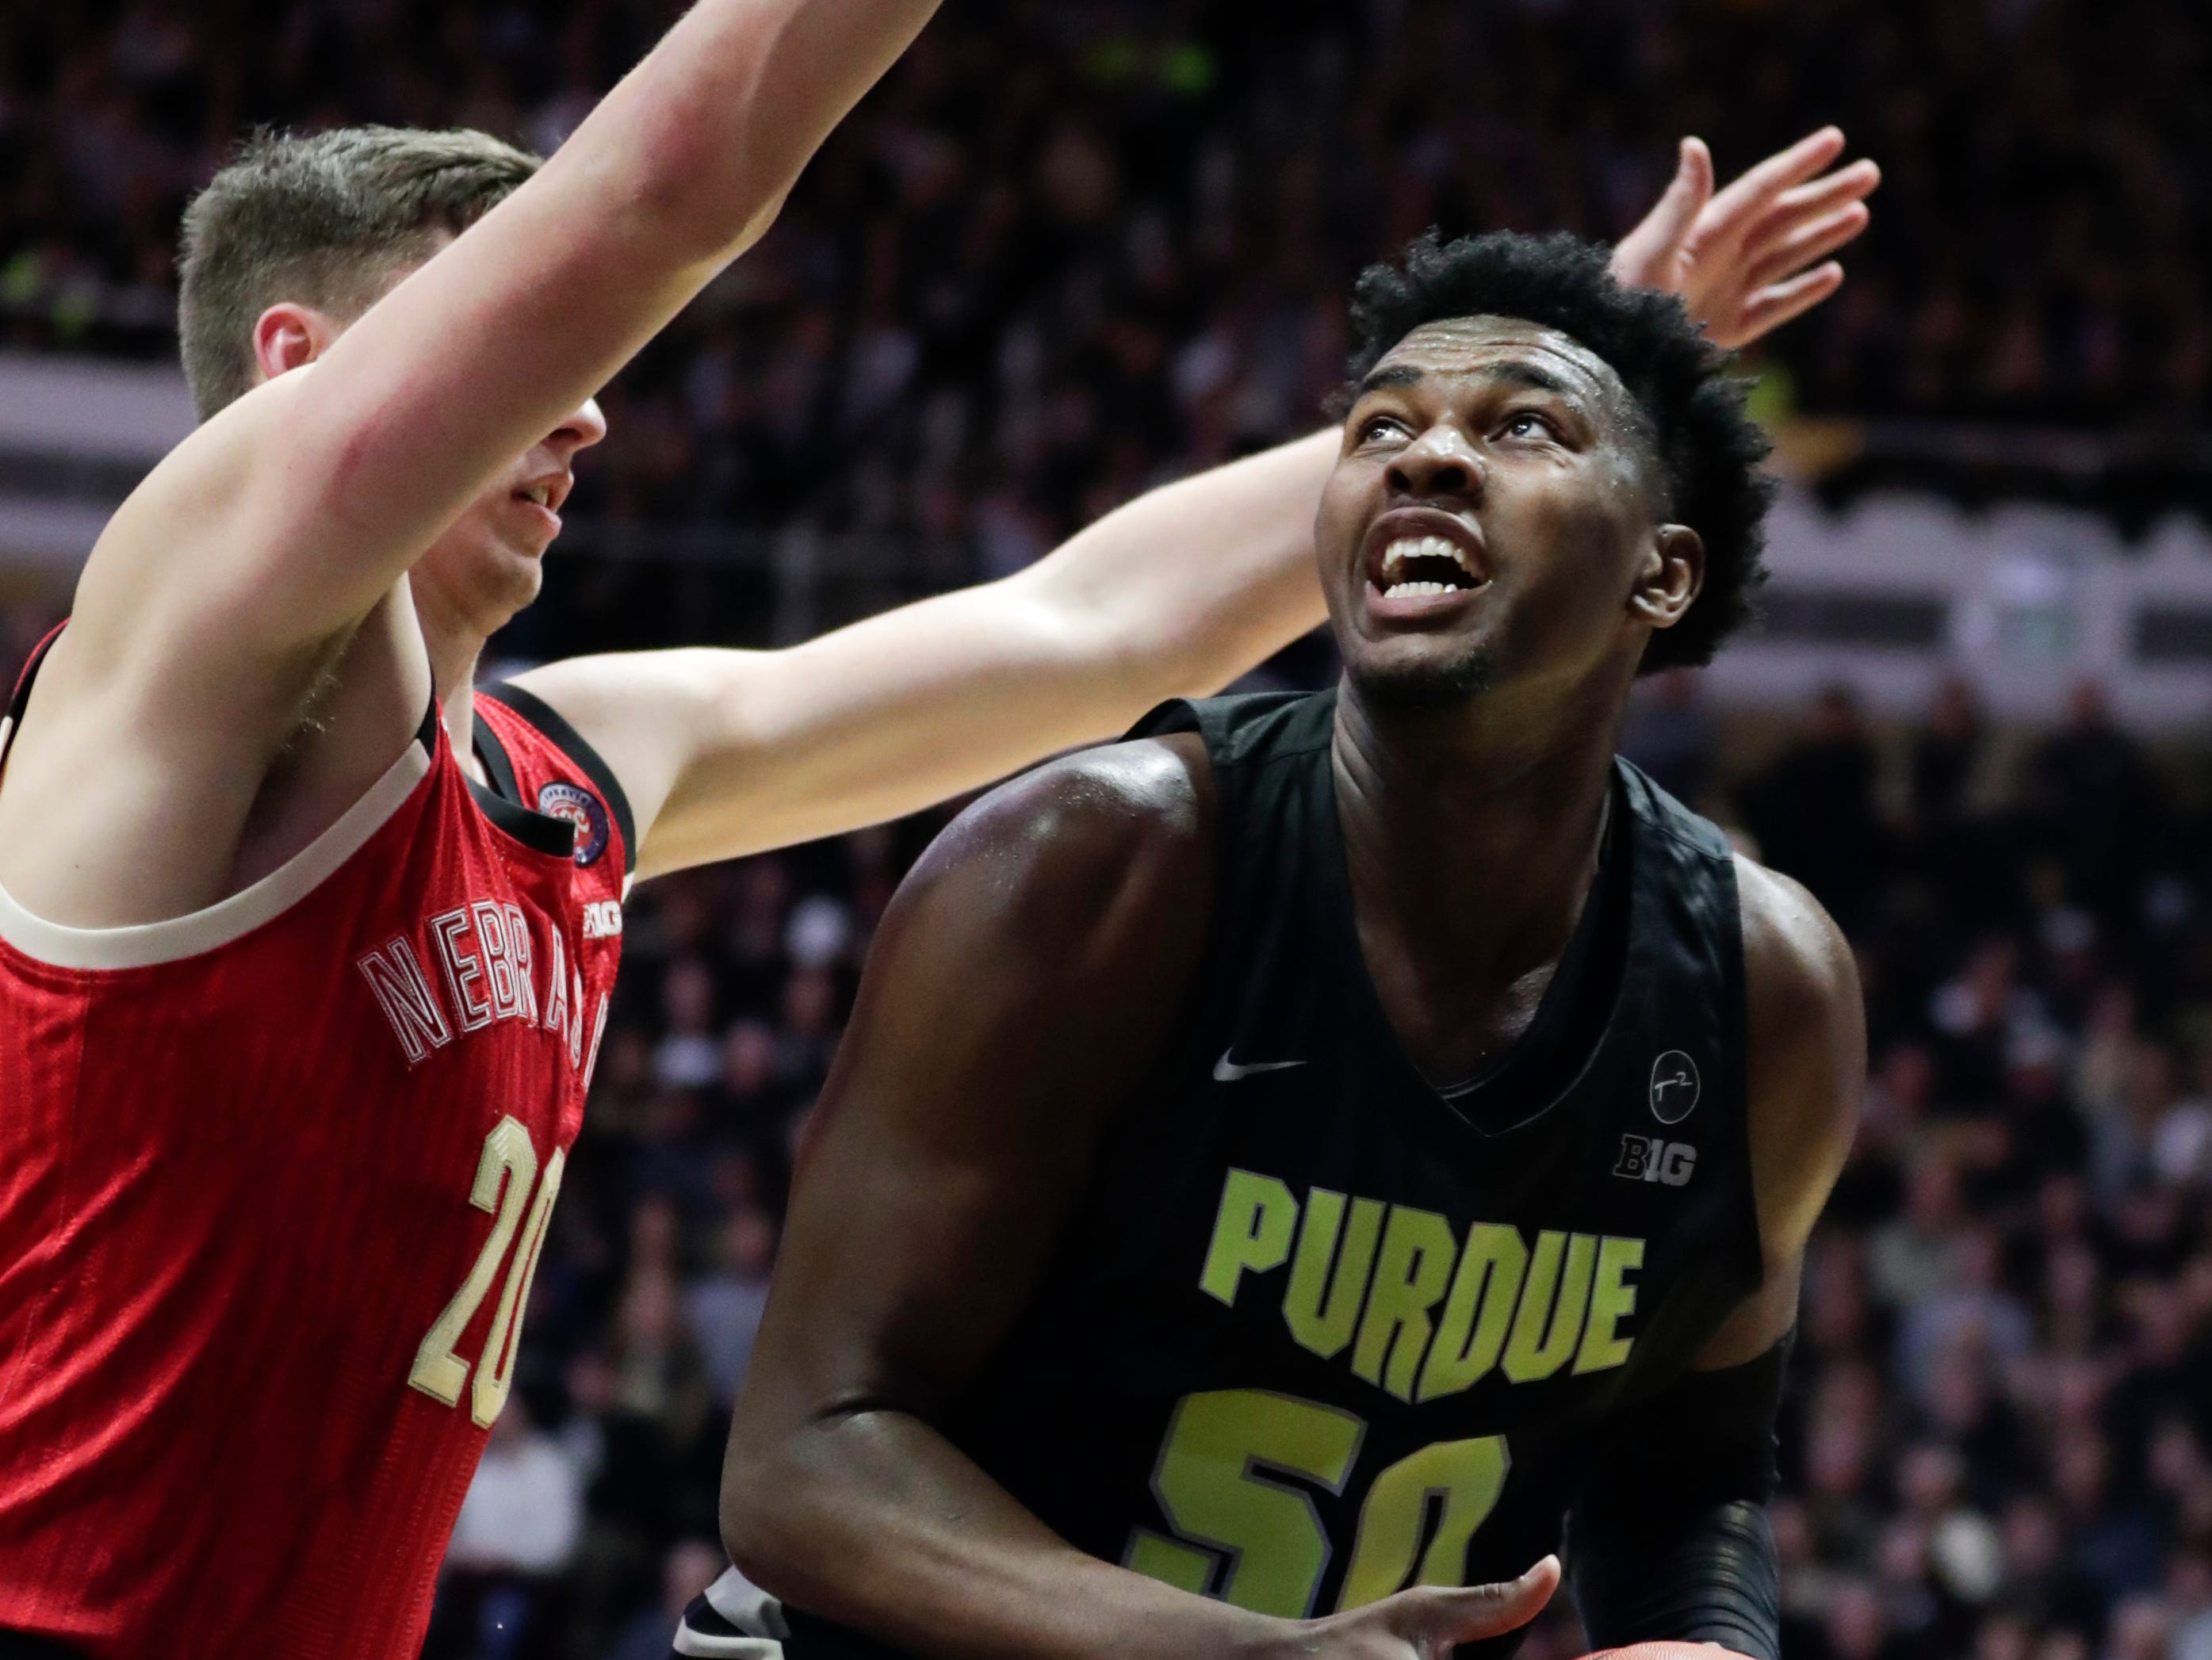 Purdue forward Trevion Williams (50) looks to shoot over Nebraska forward Tanner Borchardt (20) during the first half of an NCAA college basketball game in West Lafayette, Ind., Saturday, Feb. 9, 2019. (AP Photo/Michael Conroy)